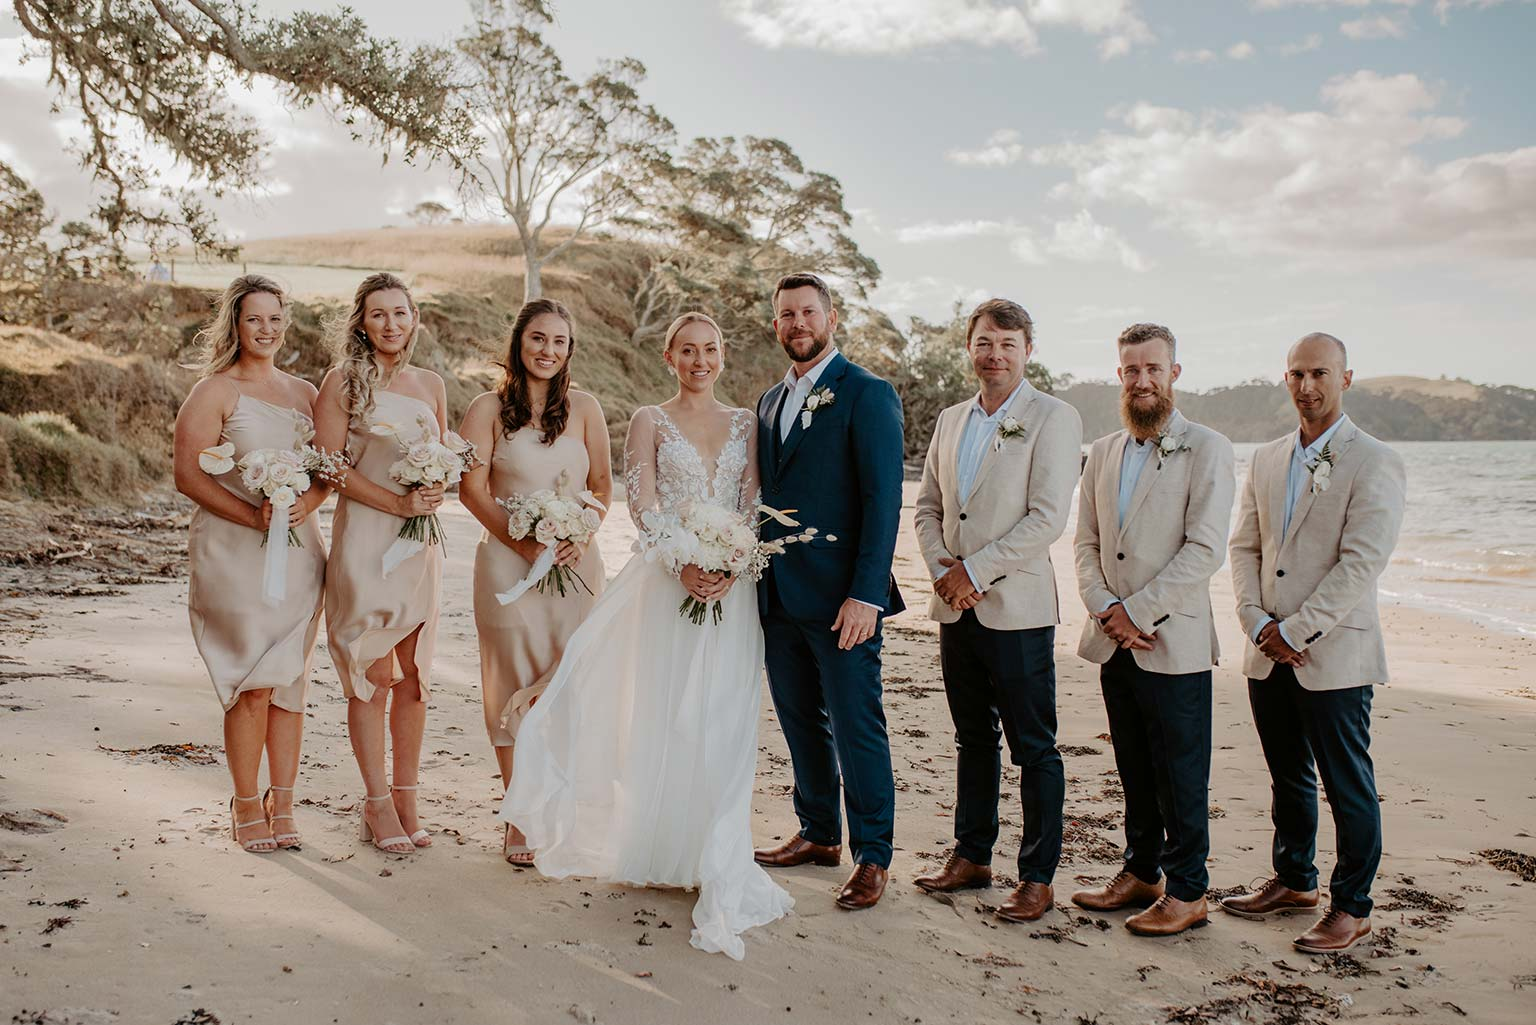 Vinka Design Features Real Weddings - bride and groom with bridesmaids and groomsmen - bride wearing a bespoke Makaira gown with silk-chiffon and tulle overskirt giving her a beautiful train which could be removed later on to reveal a floor length party dress